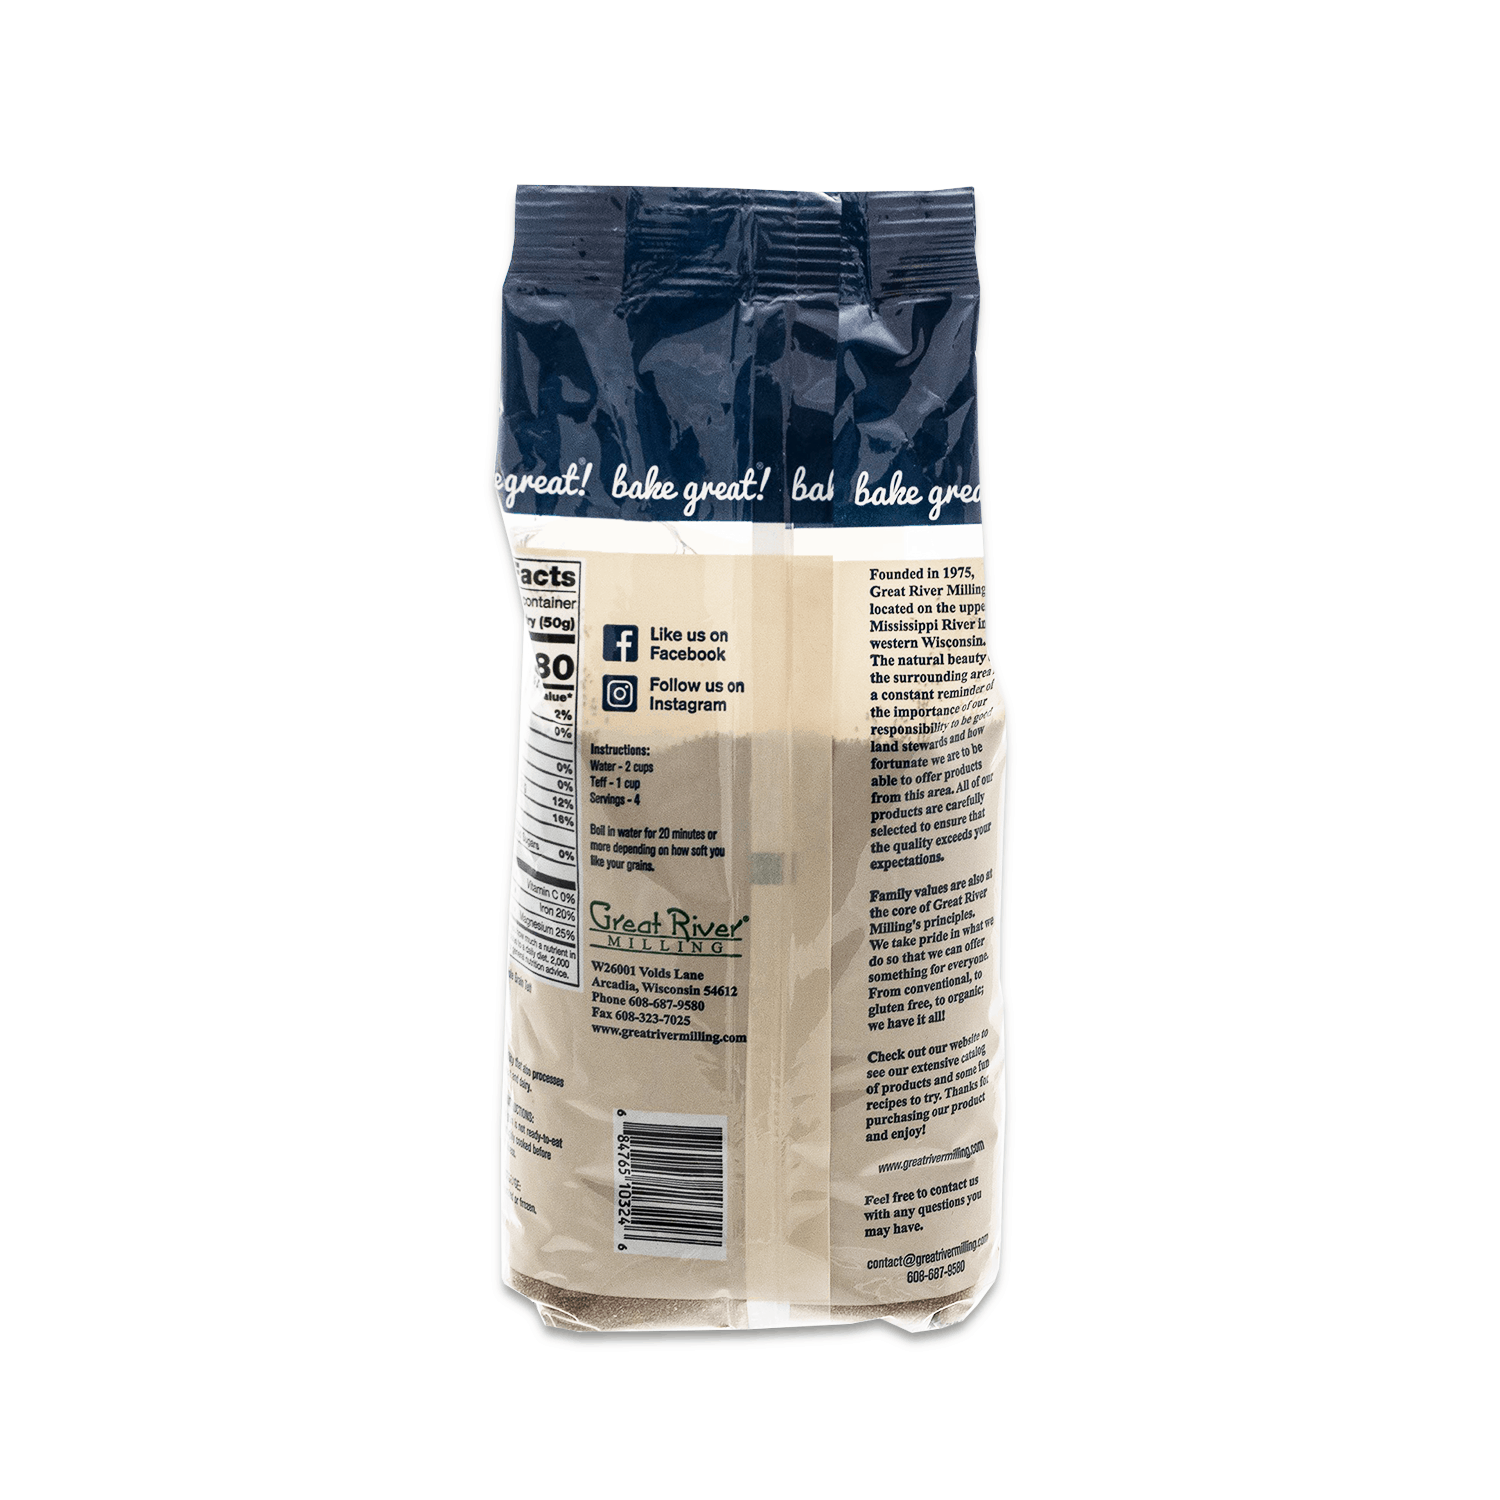 Whole Grain Teff 24oz Back